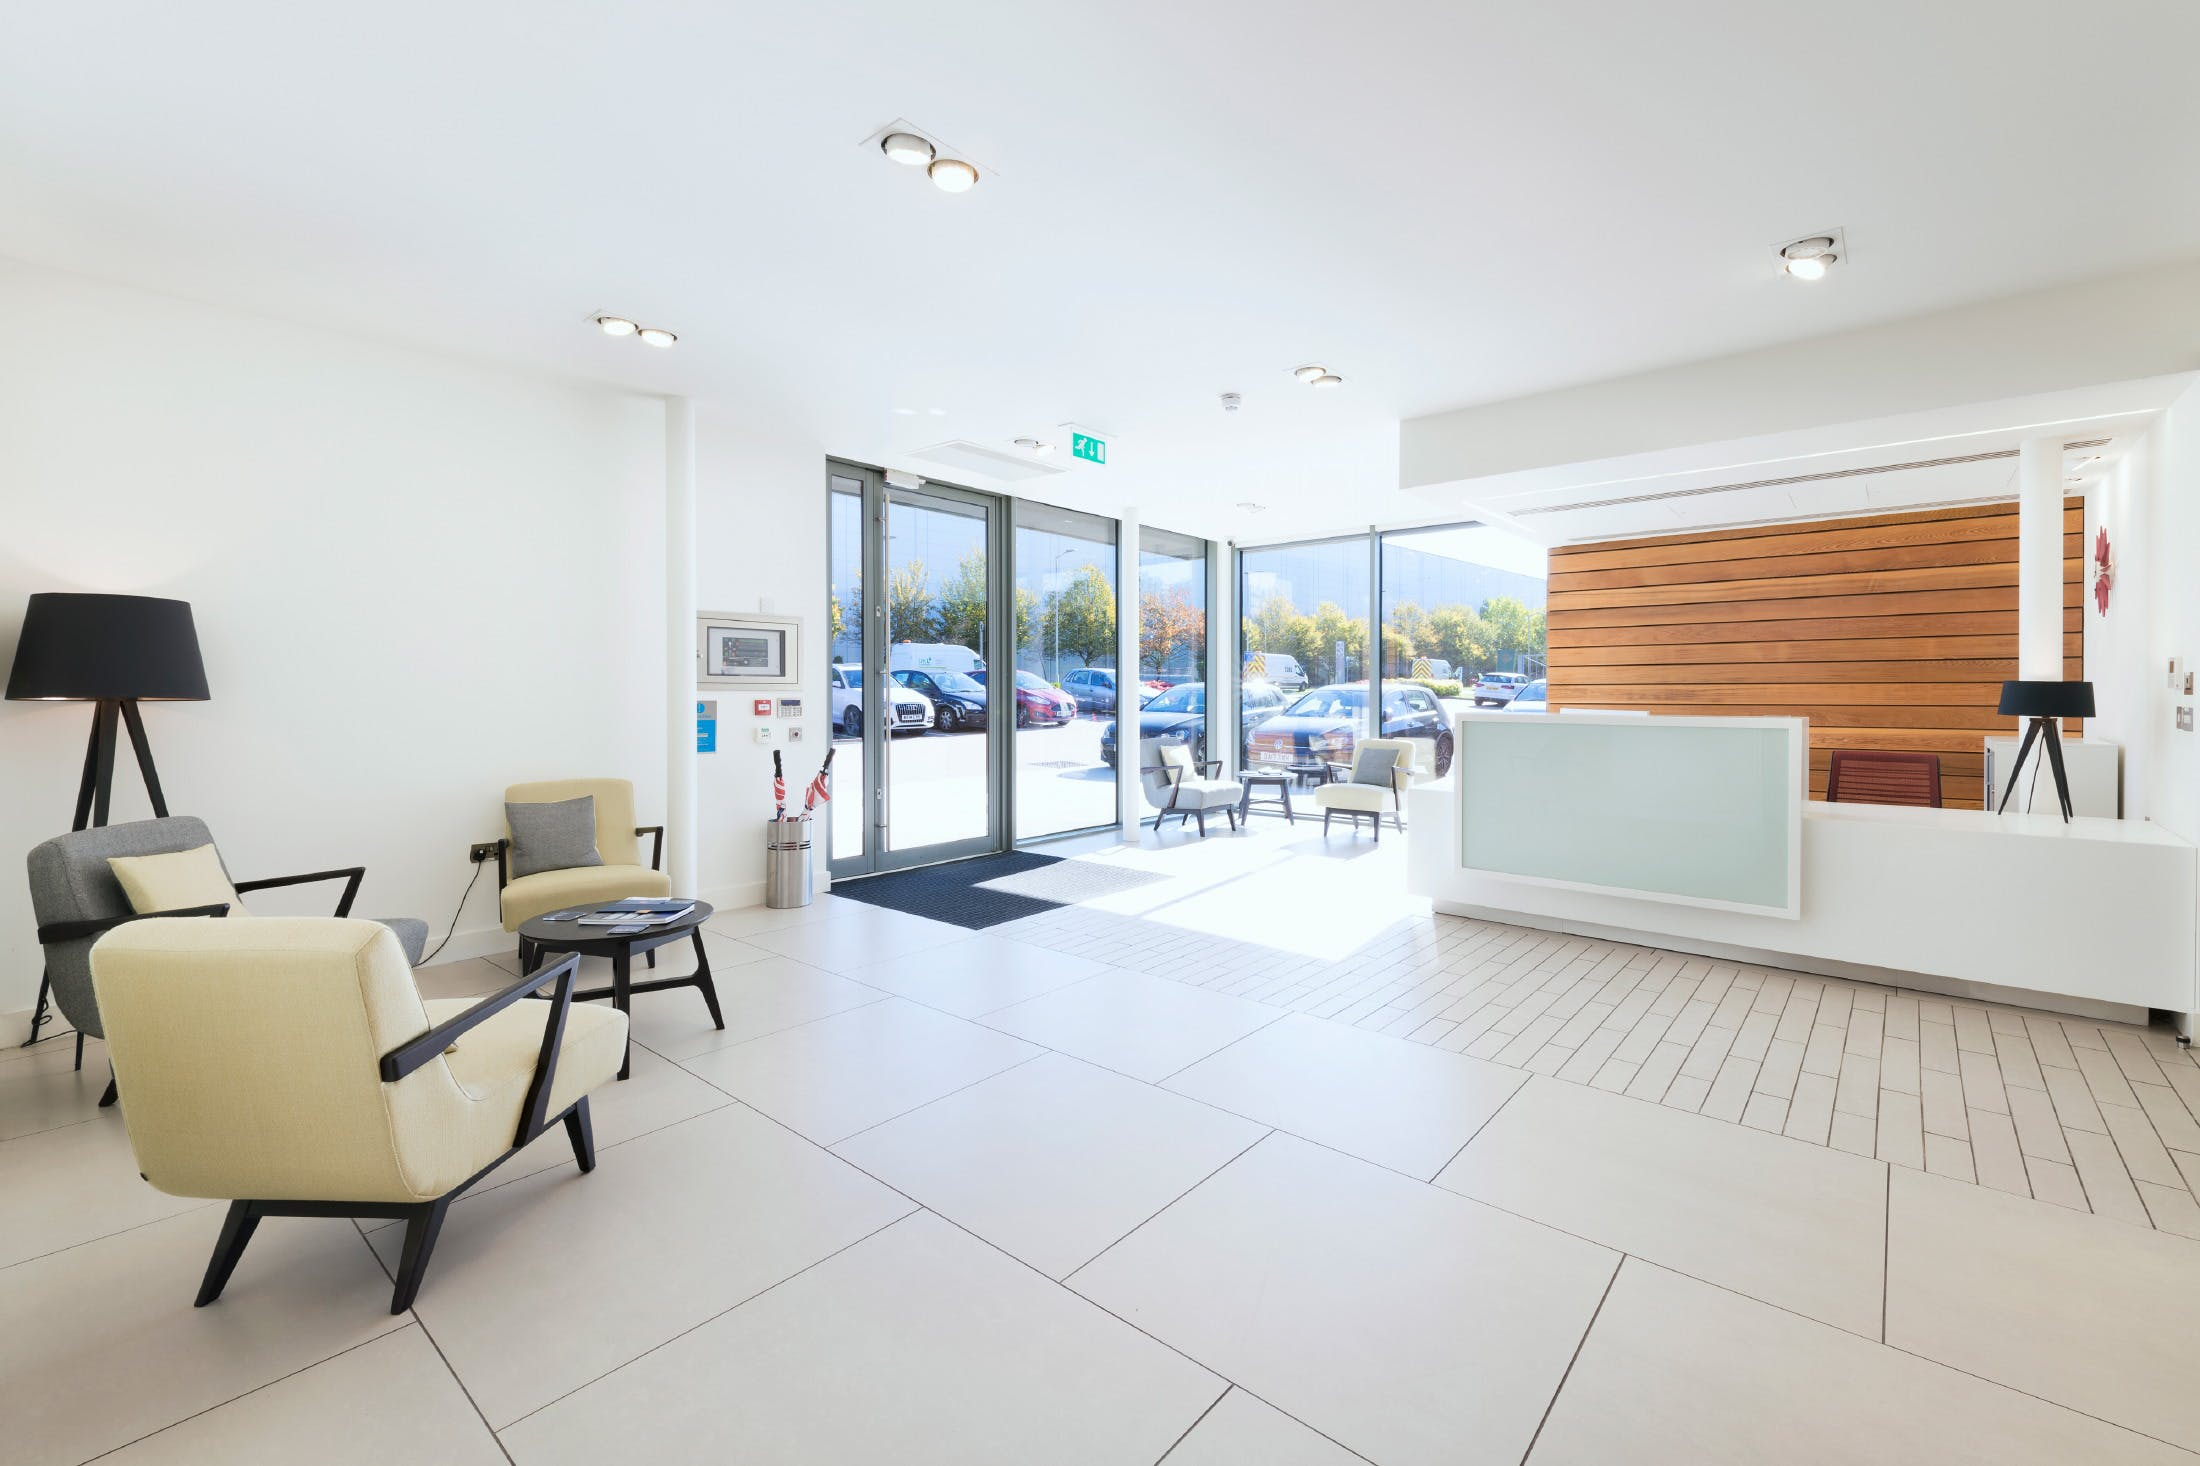 Suite 1.7, 329 Bracknell, Bracknell, Offices To Let - Reception.jpg